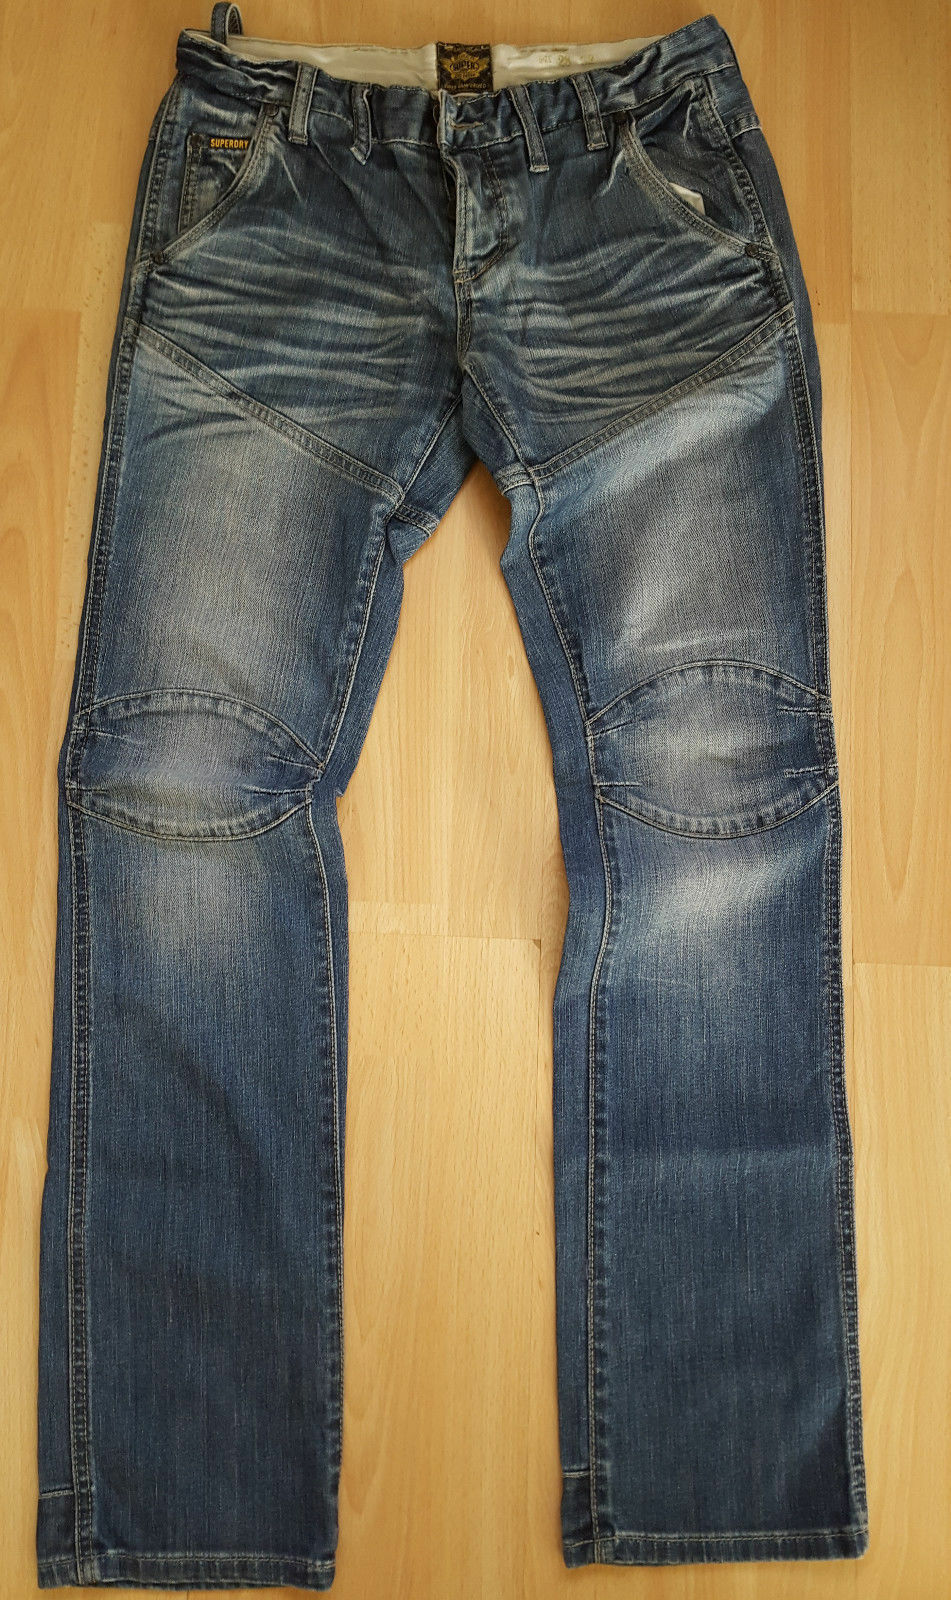 Superdry Biker Jeans Denim Super Sanforized bluee Size W28 L32